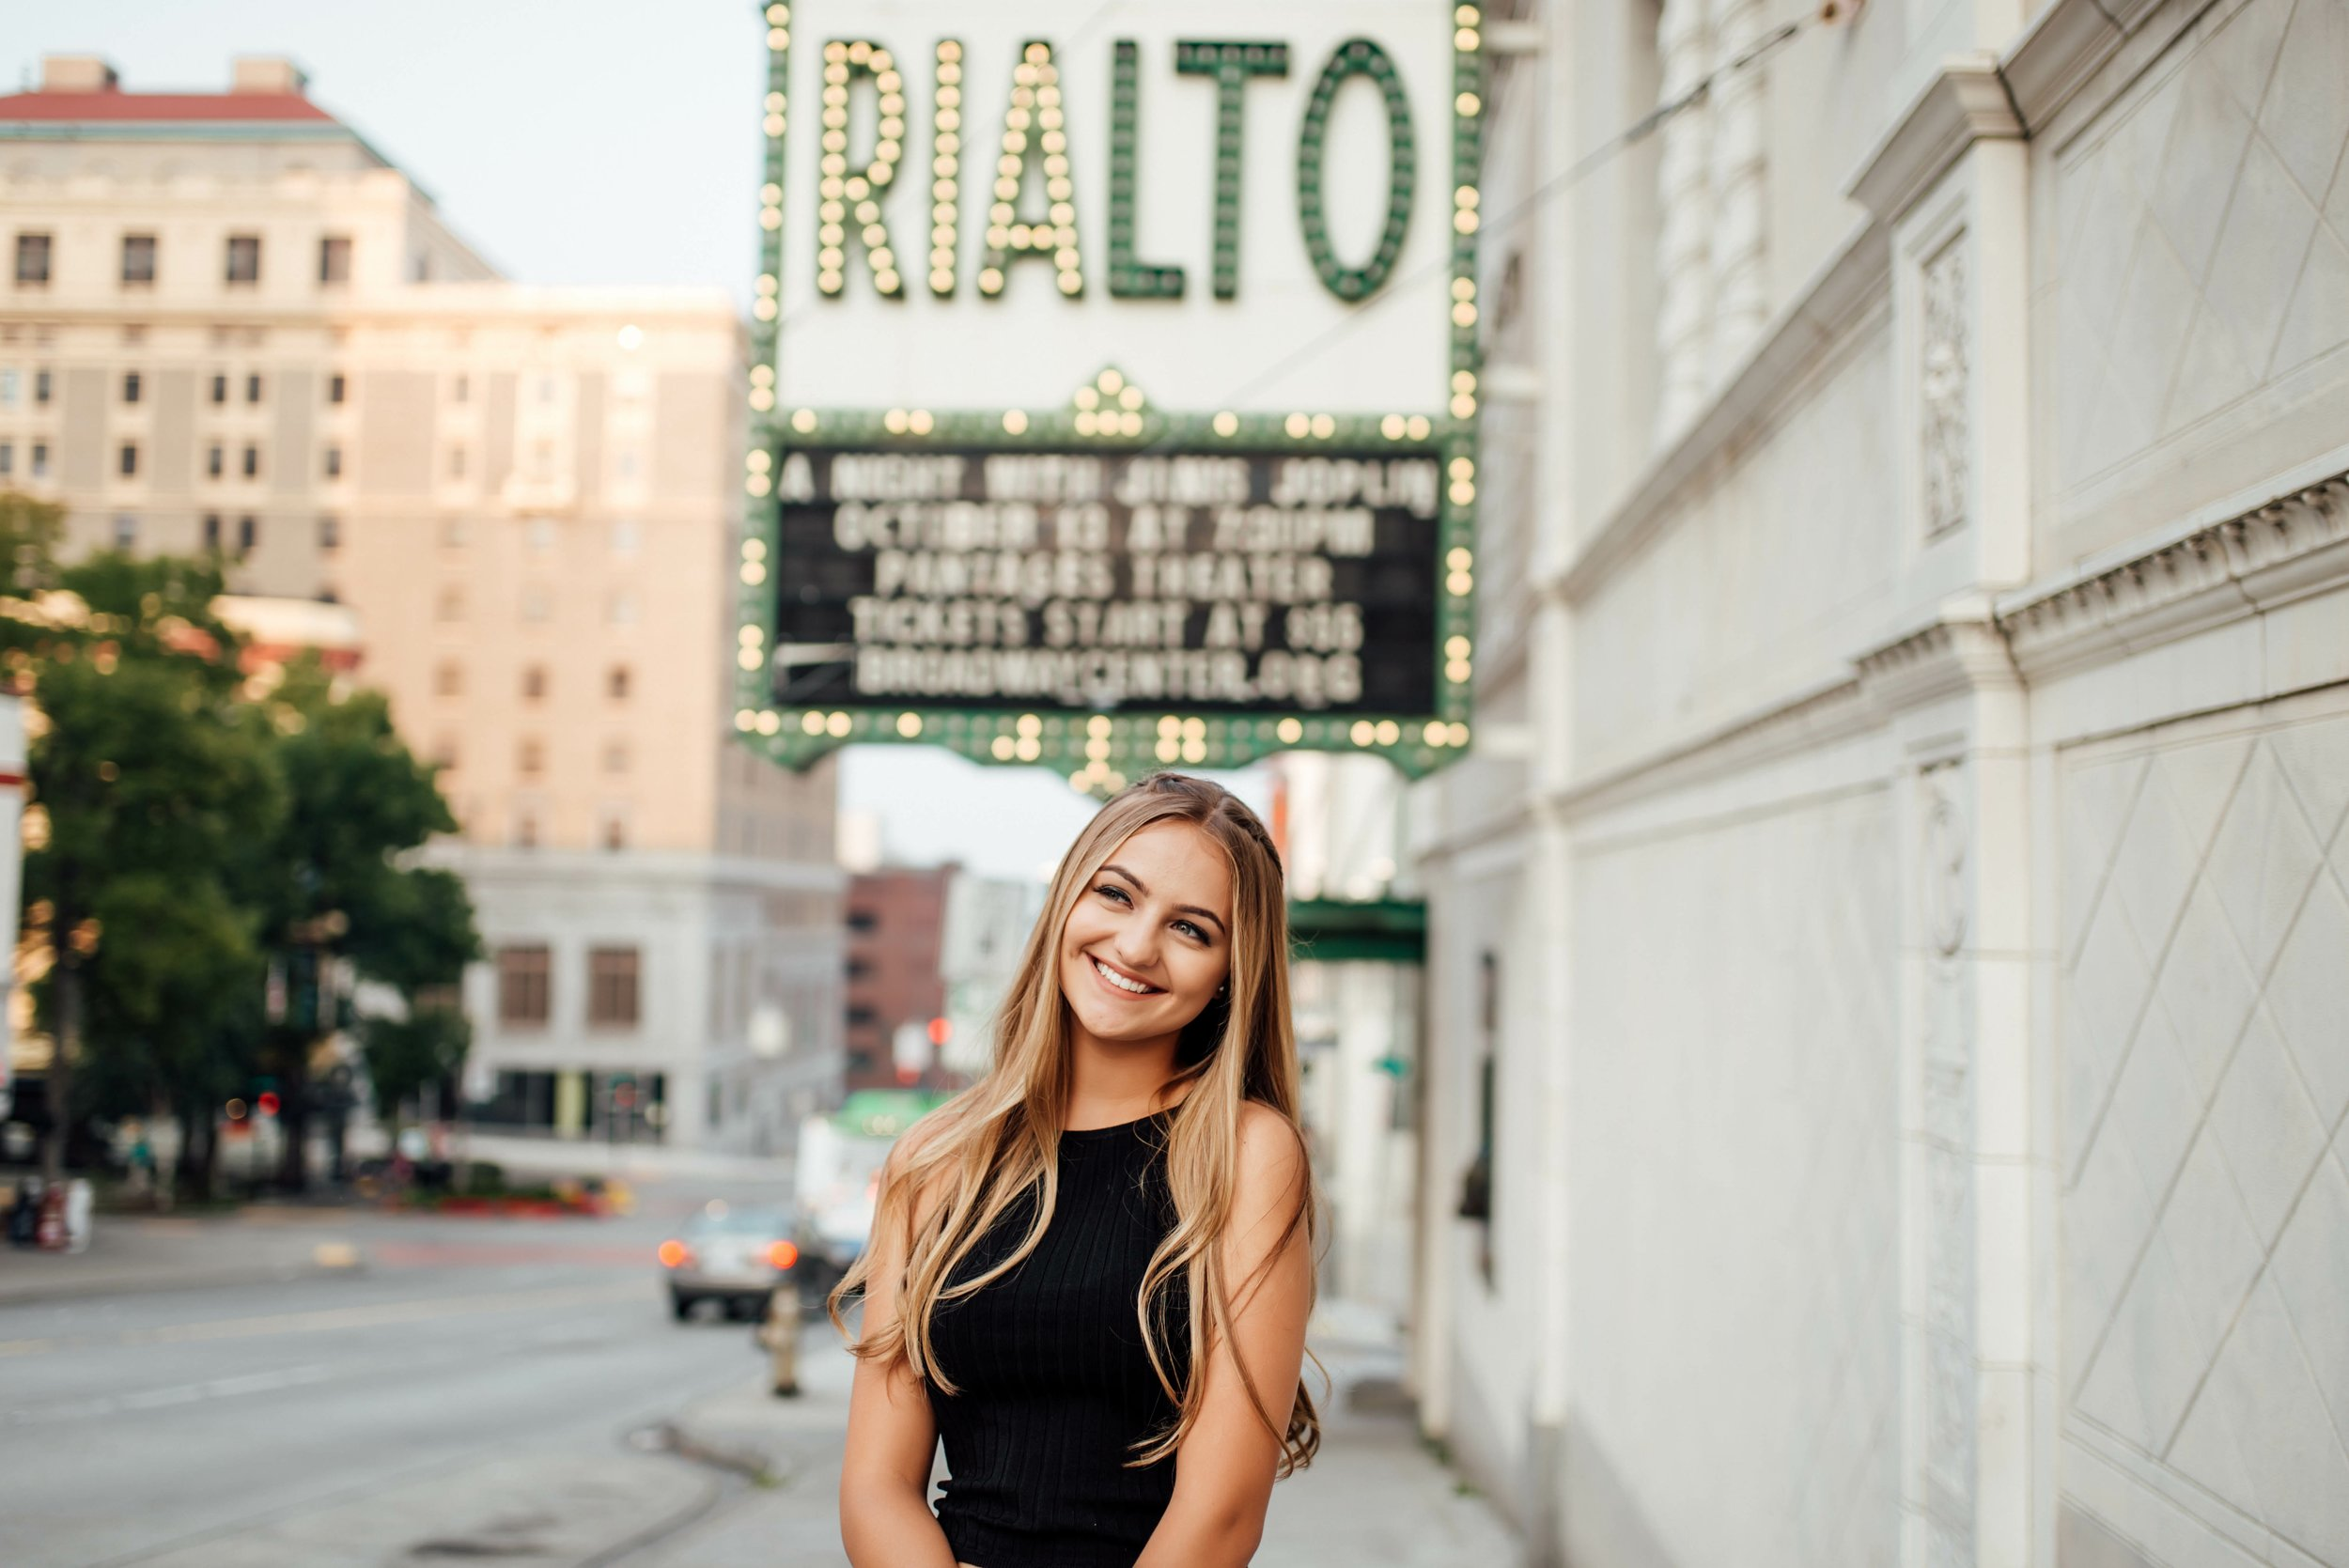 brittingham_photography_gracie_senior_photos-124.jpg